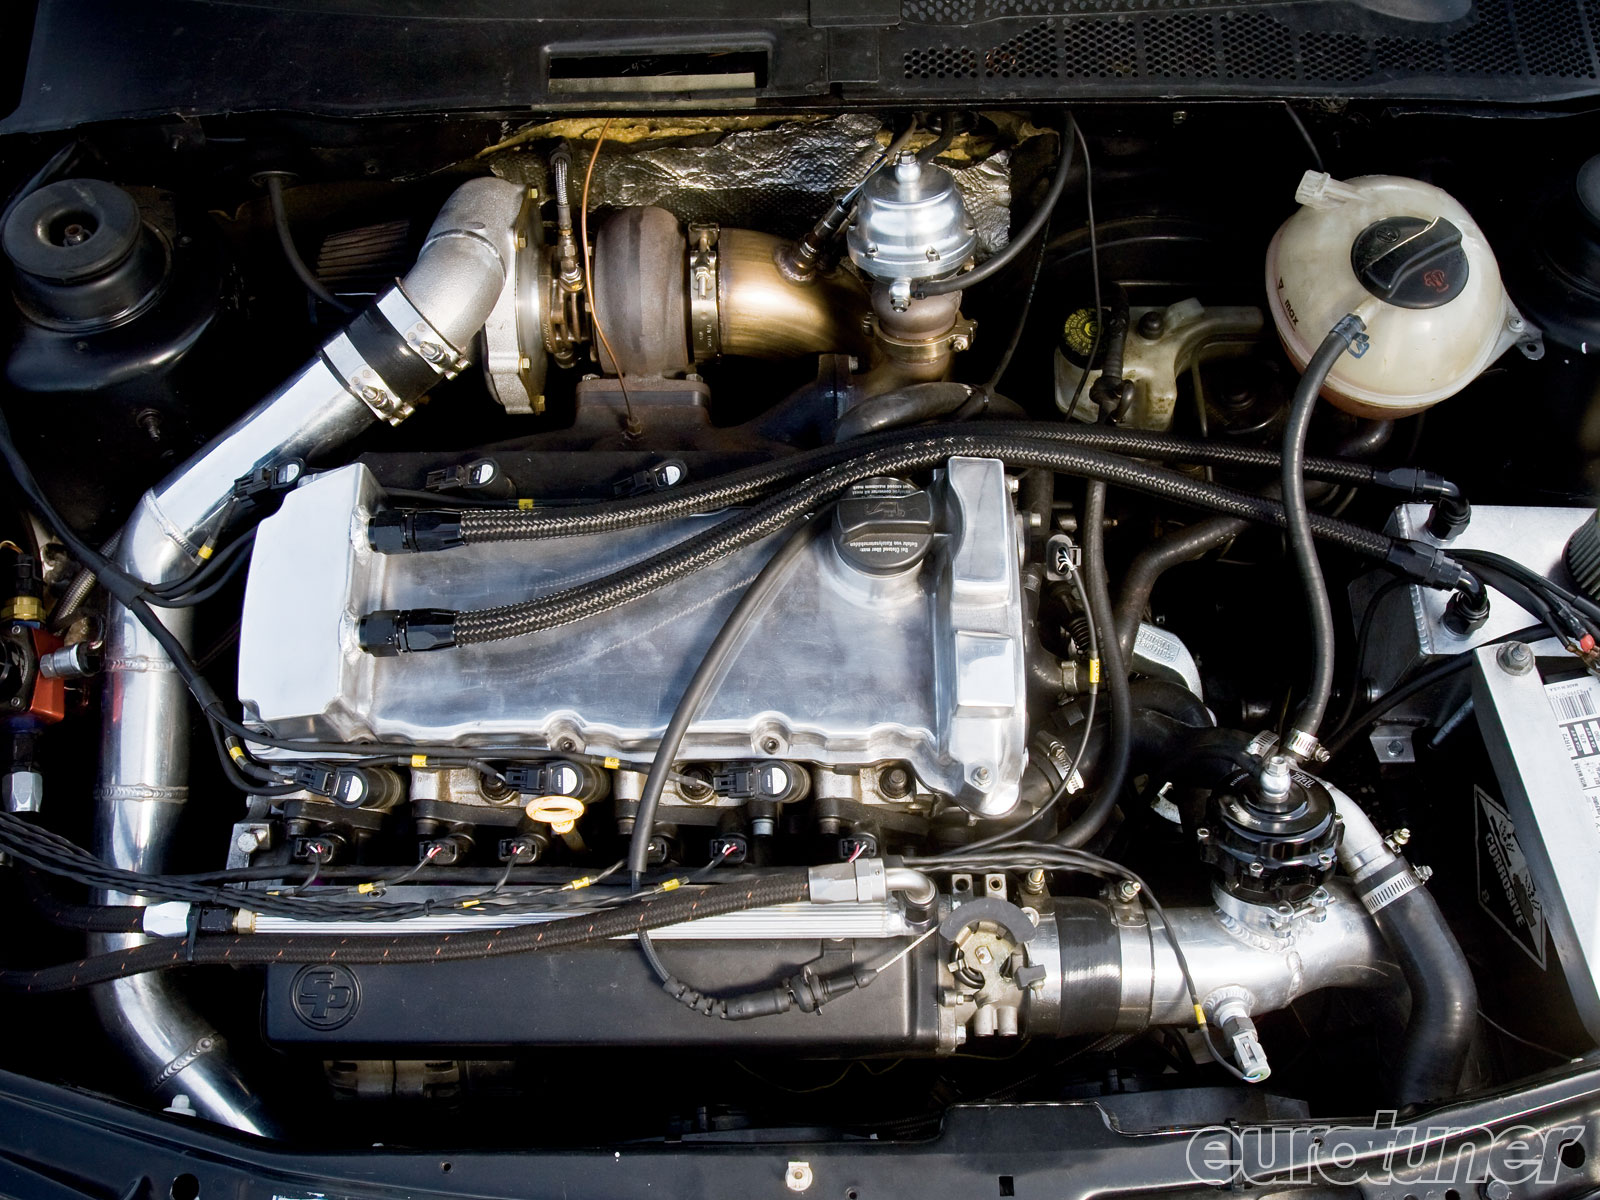 hight resolution of  eurp 1006 05 o 1997 vw gti vr6 turbo